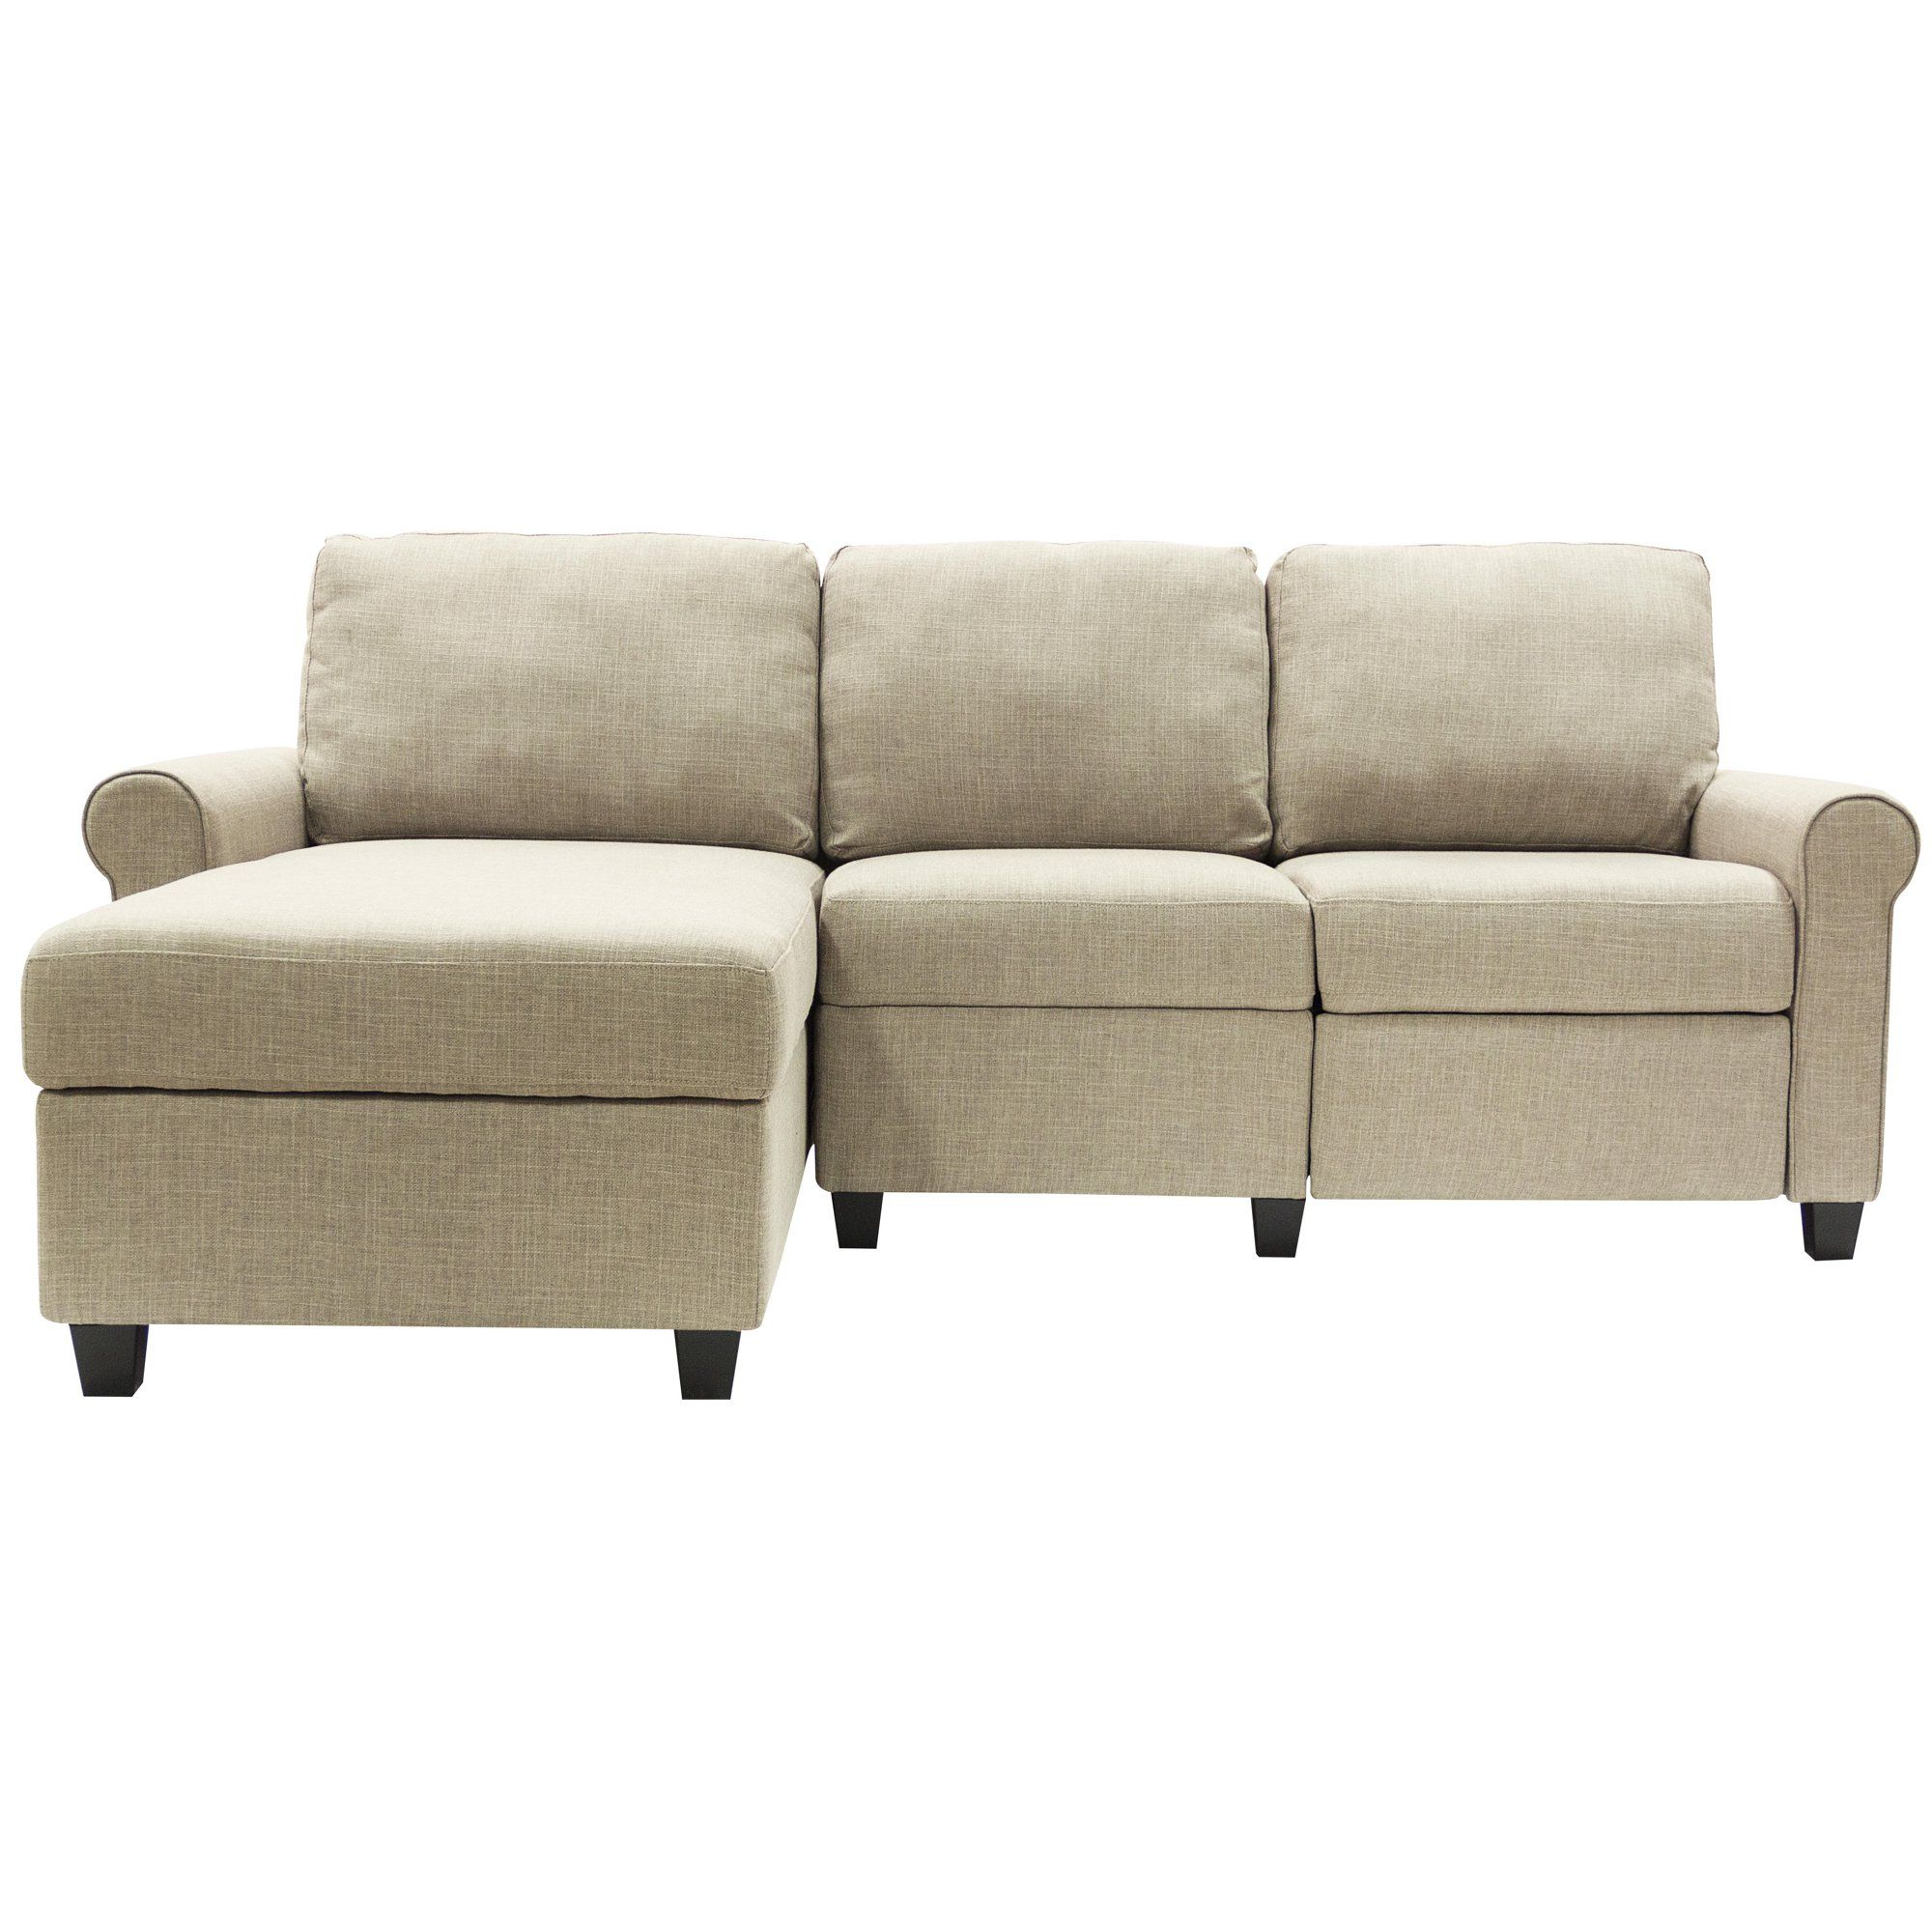 Most Current Copenhagen Reclining Sectional Sofas With Left Storage Chaise With Serta Copenhagen Reclining Sectional With Right Storage (View 12 of 20)